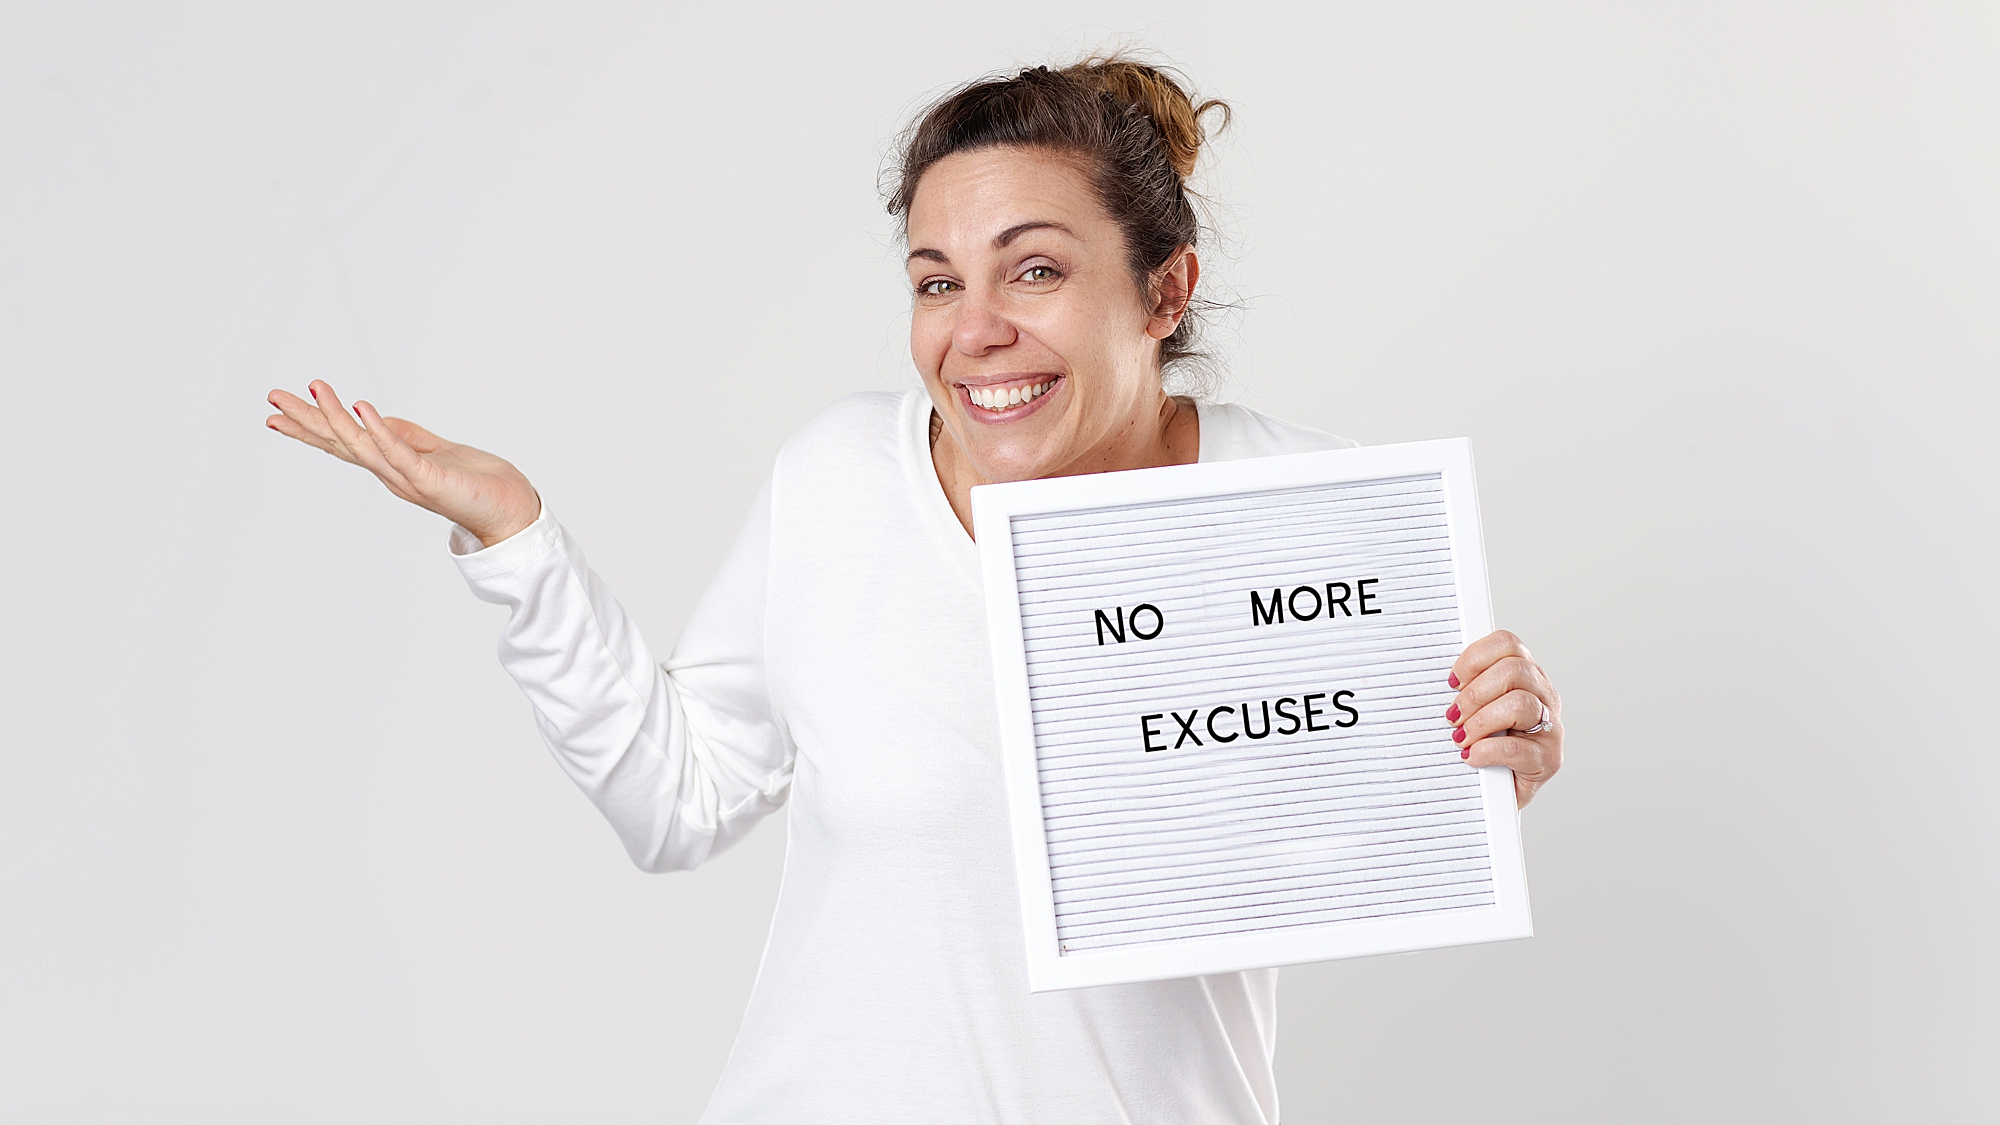 no more excuses kristina rose photography business